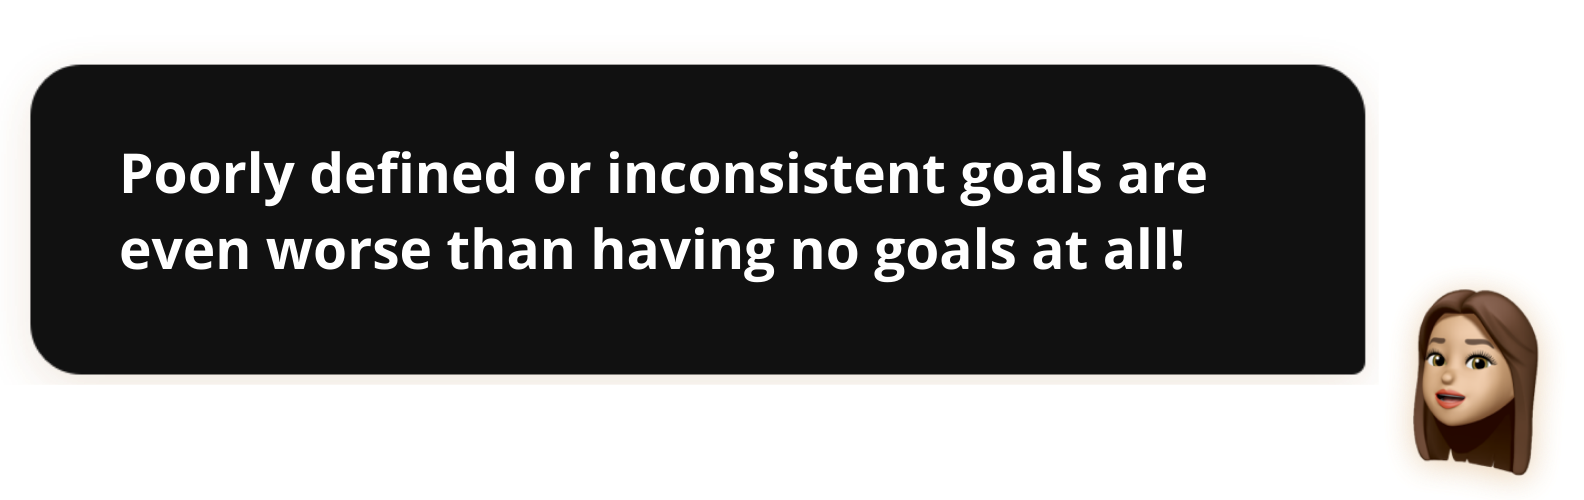 Poorly defined or inconsistent goals are even worse than having no goals at all!